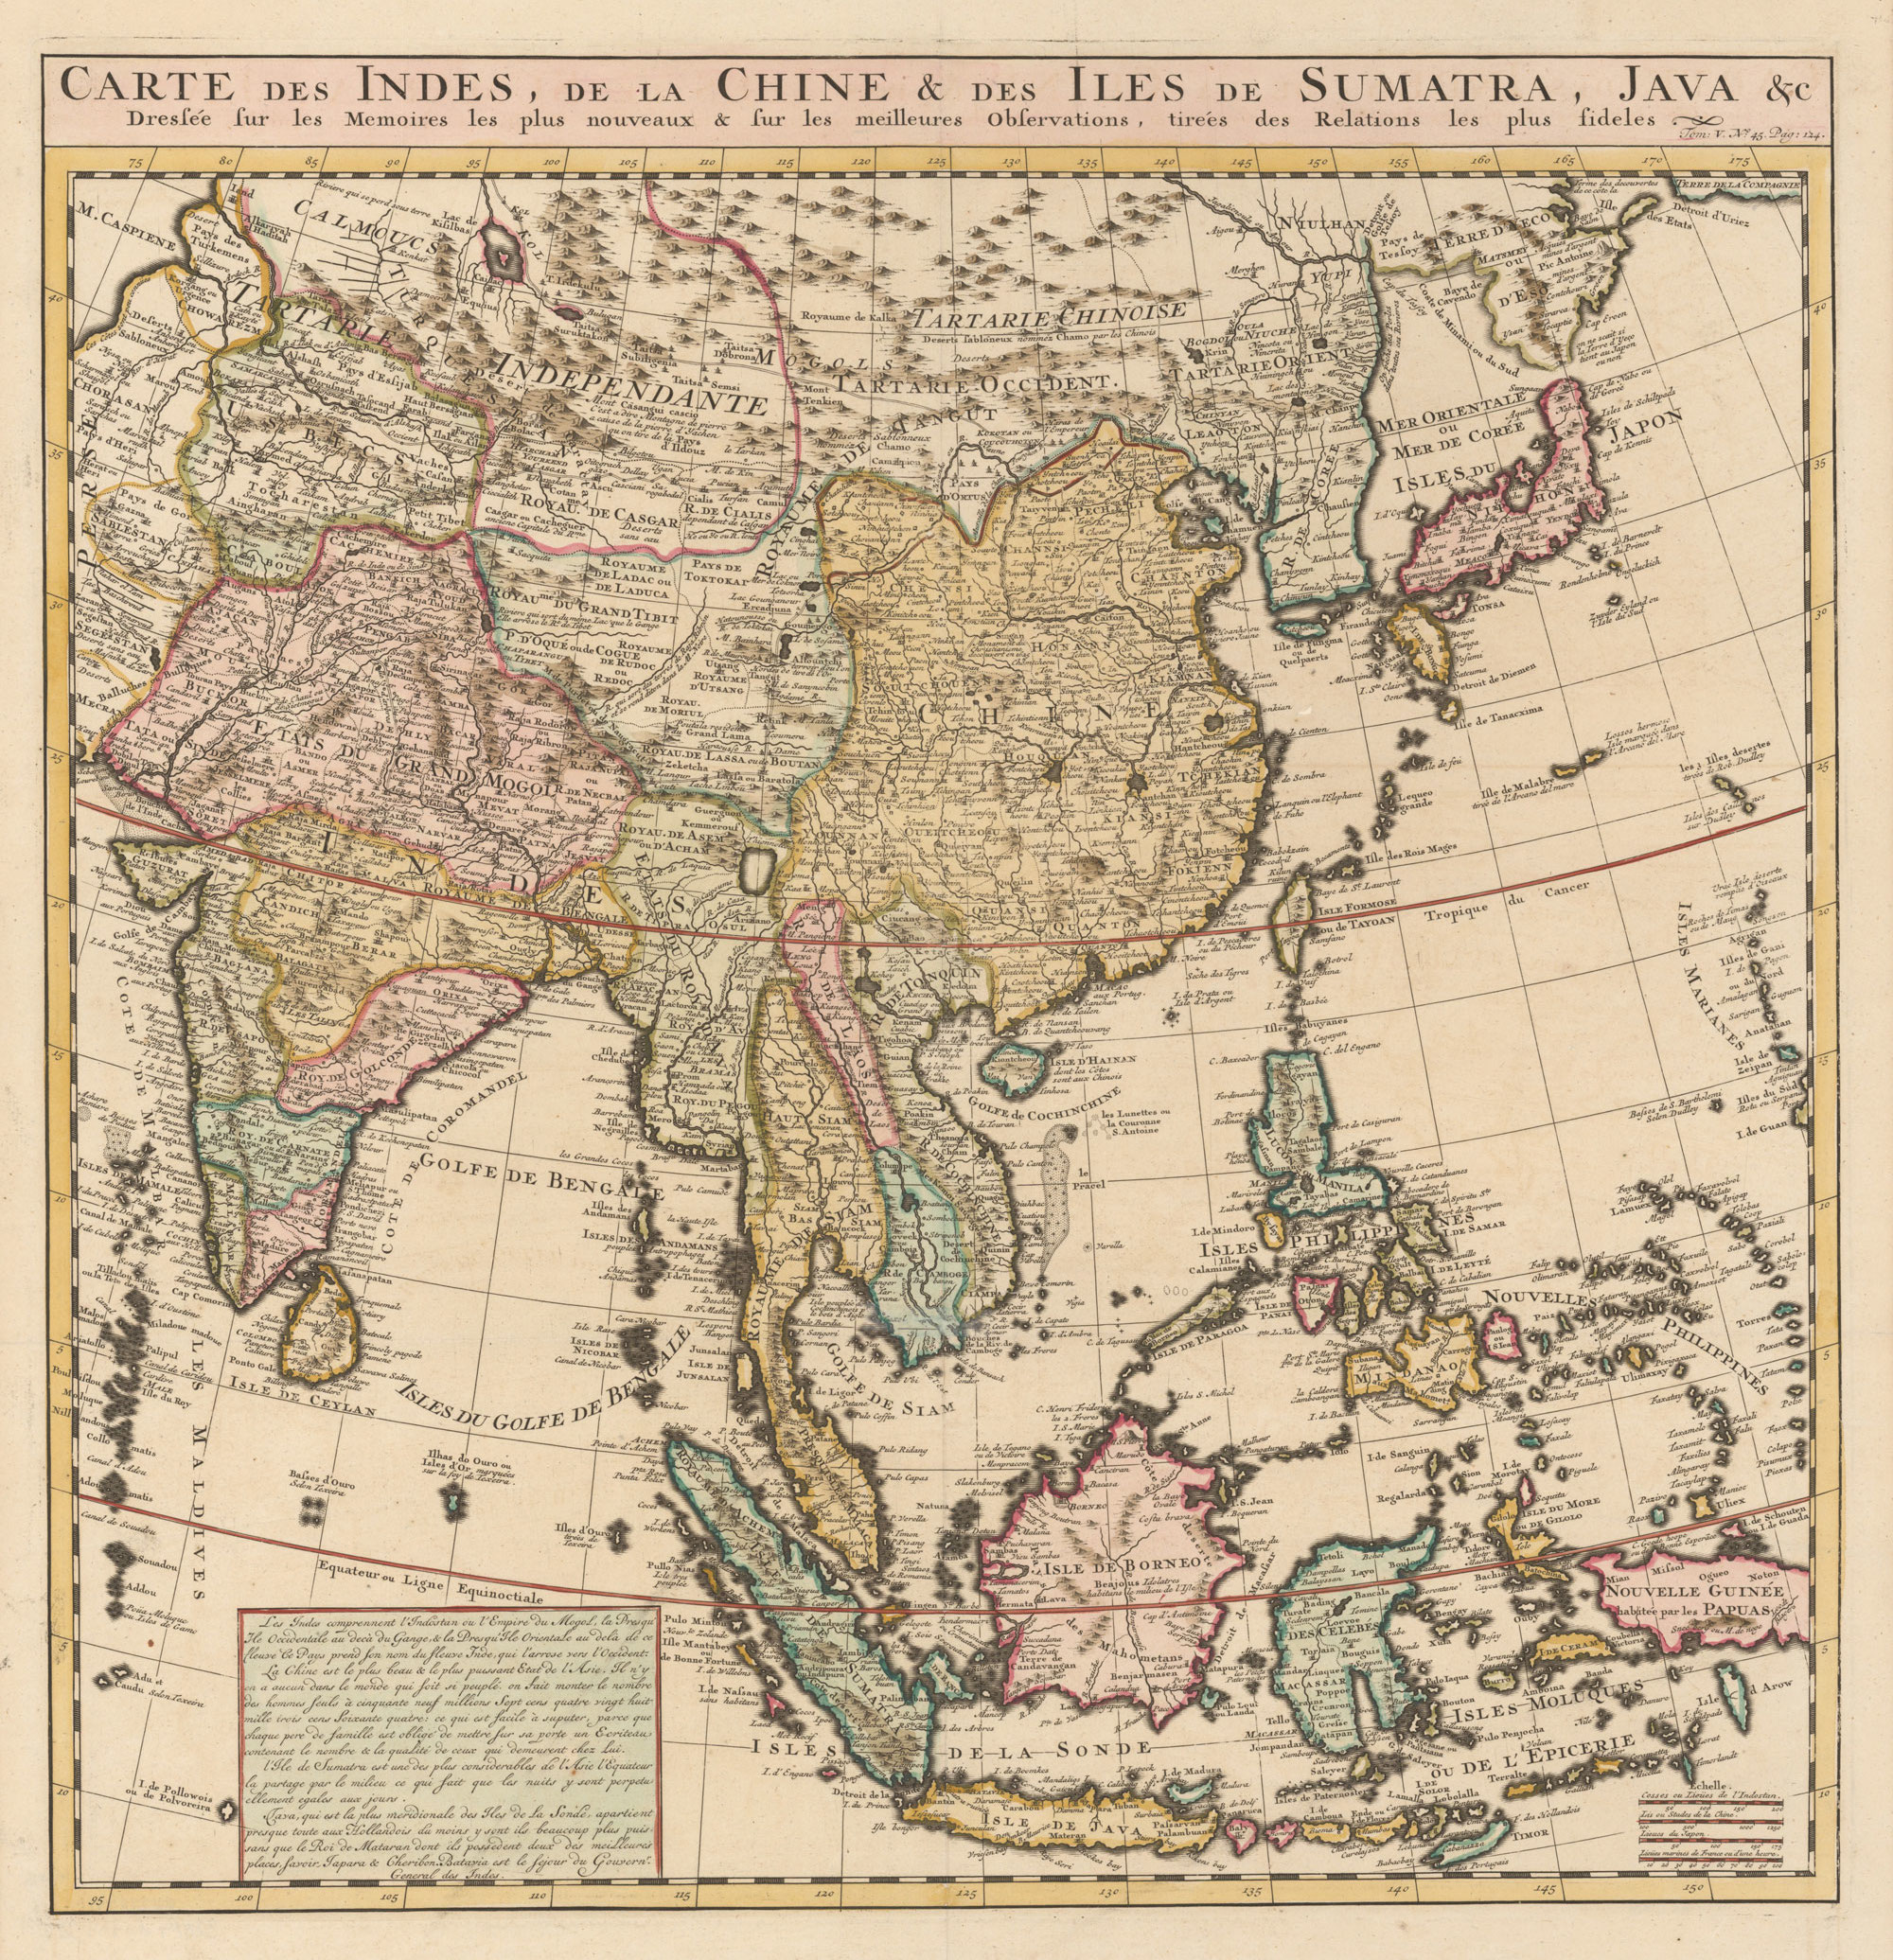 Antique Map South East Asia by Chatelain | Bartele ...